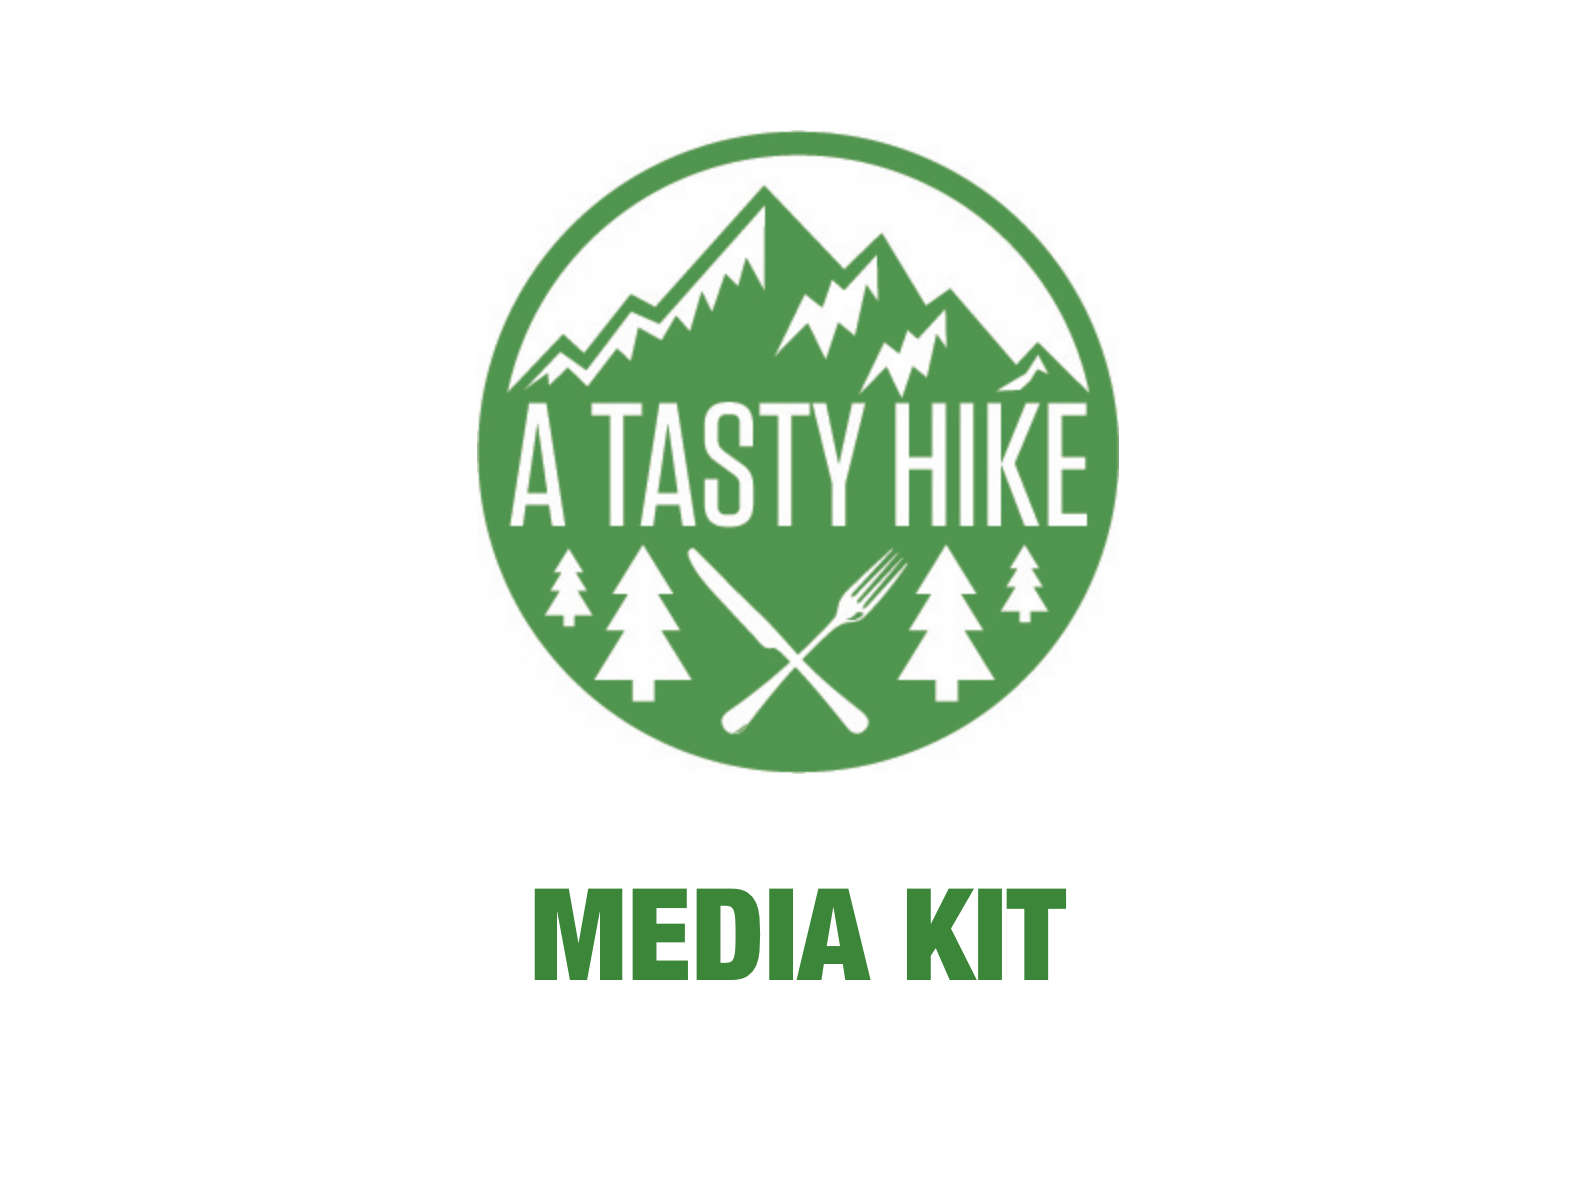 A Tasty Hike Media Kit